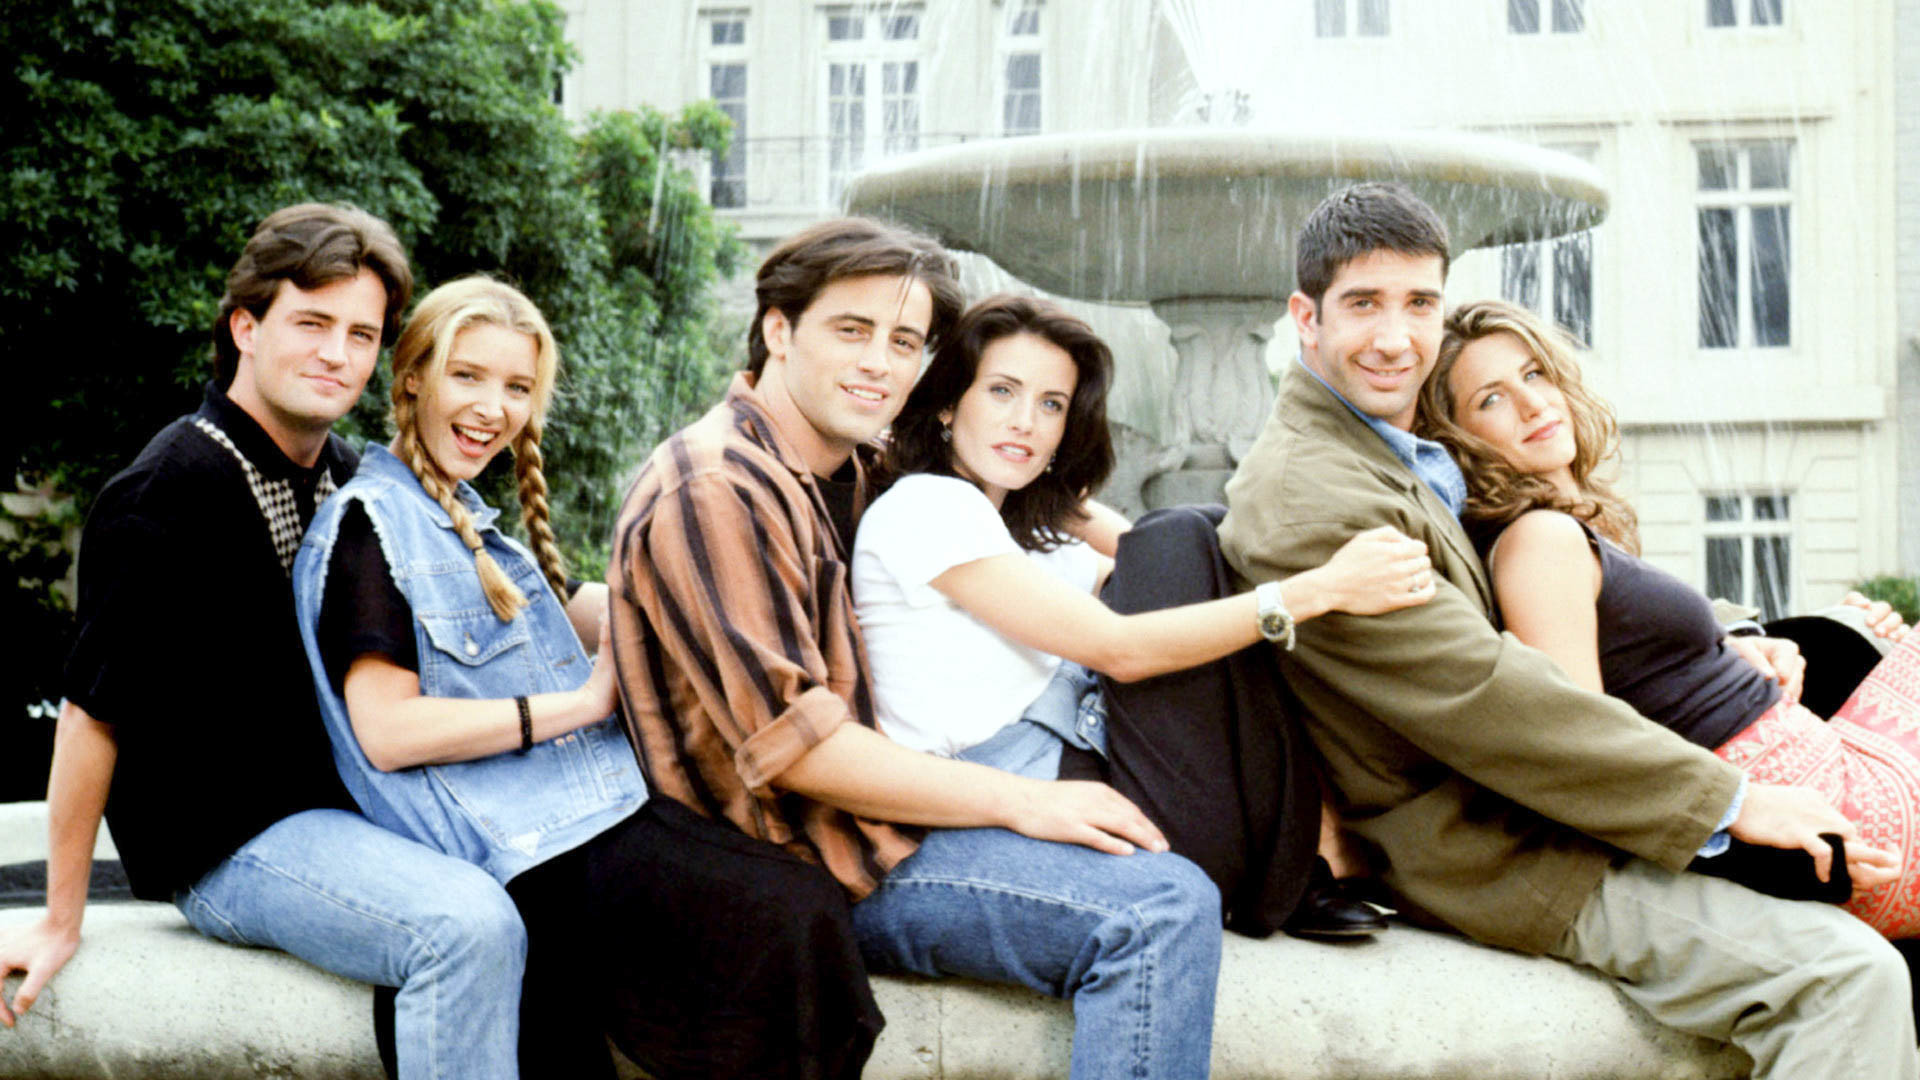 friends tv series friends wallpaper 1680x1050 you gotta love